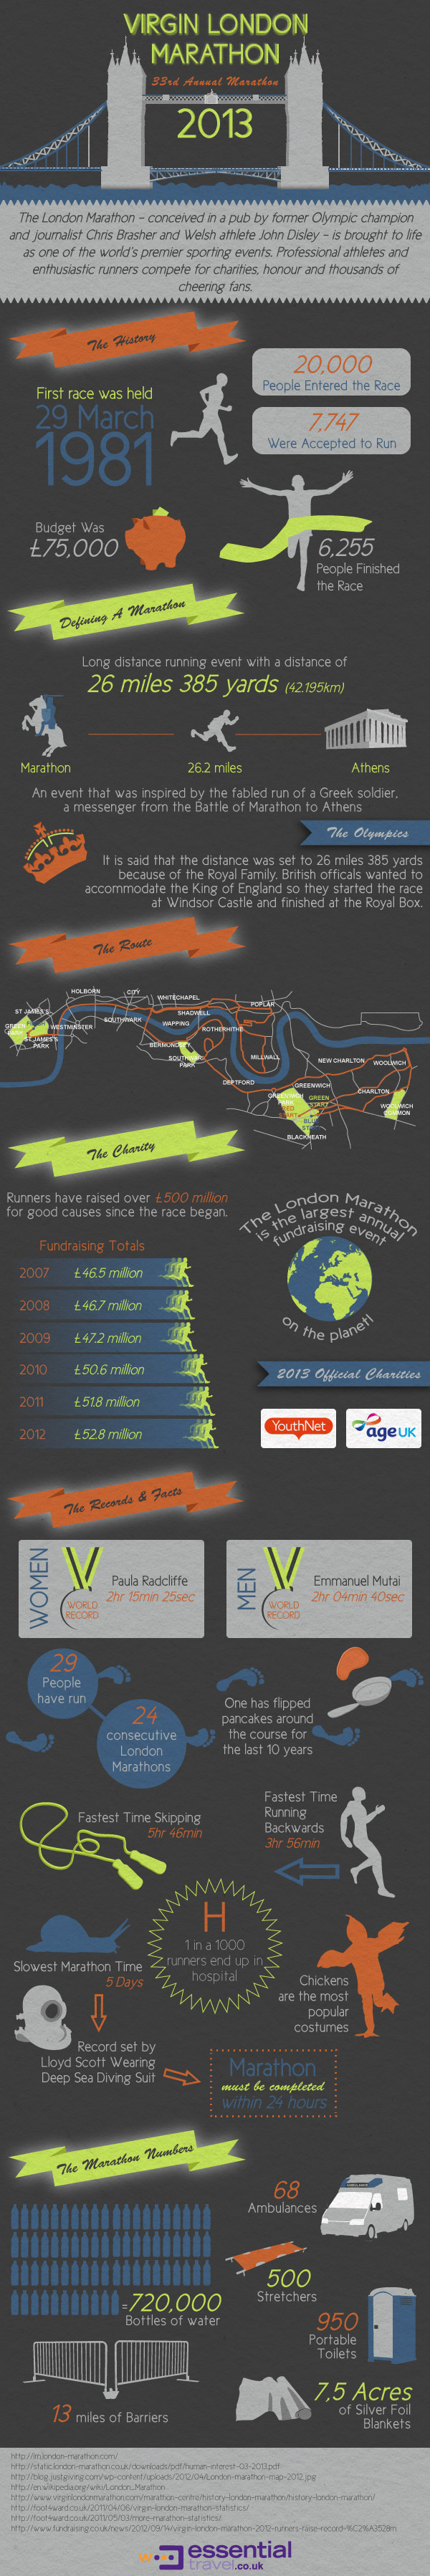 London Marathon Infographic